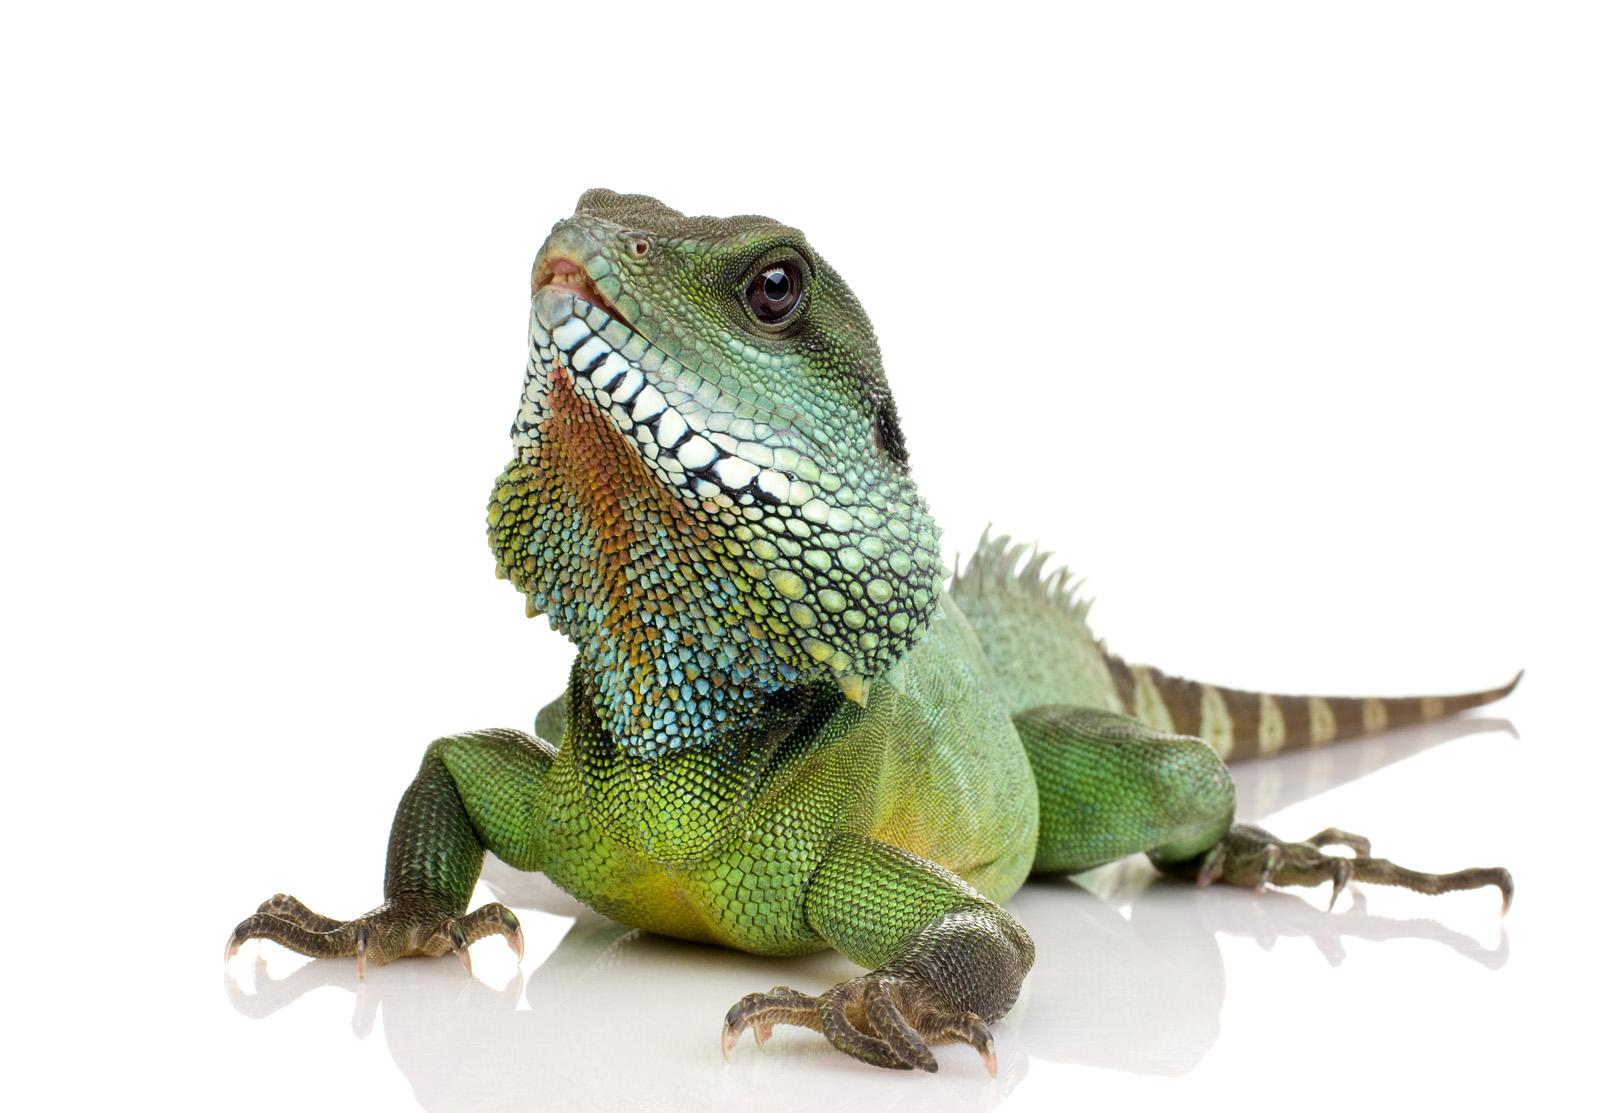 Wallpapers Reptiles Animals White Background